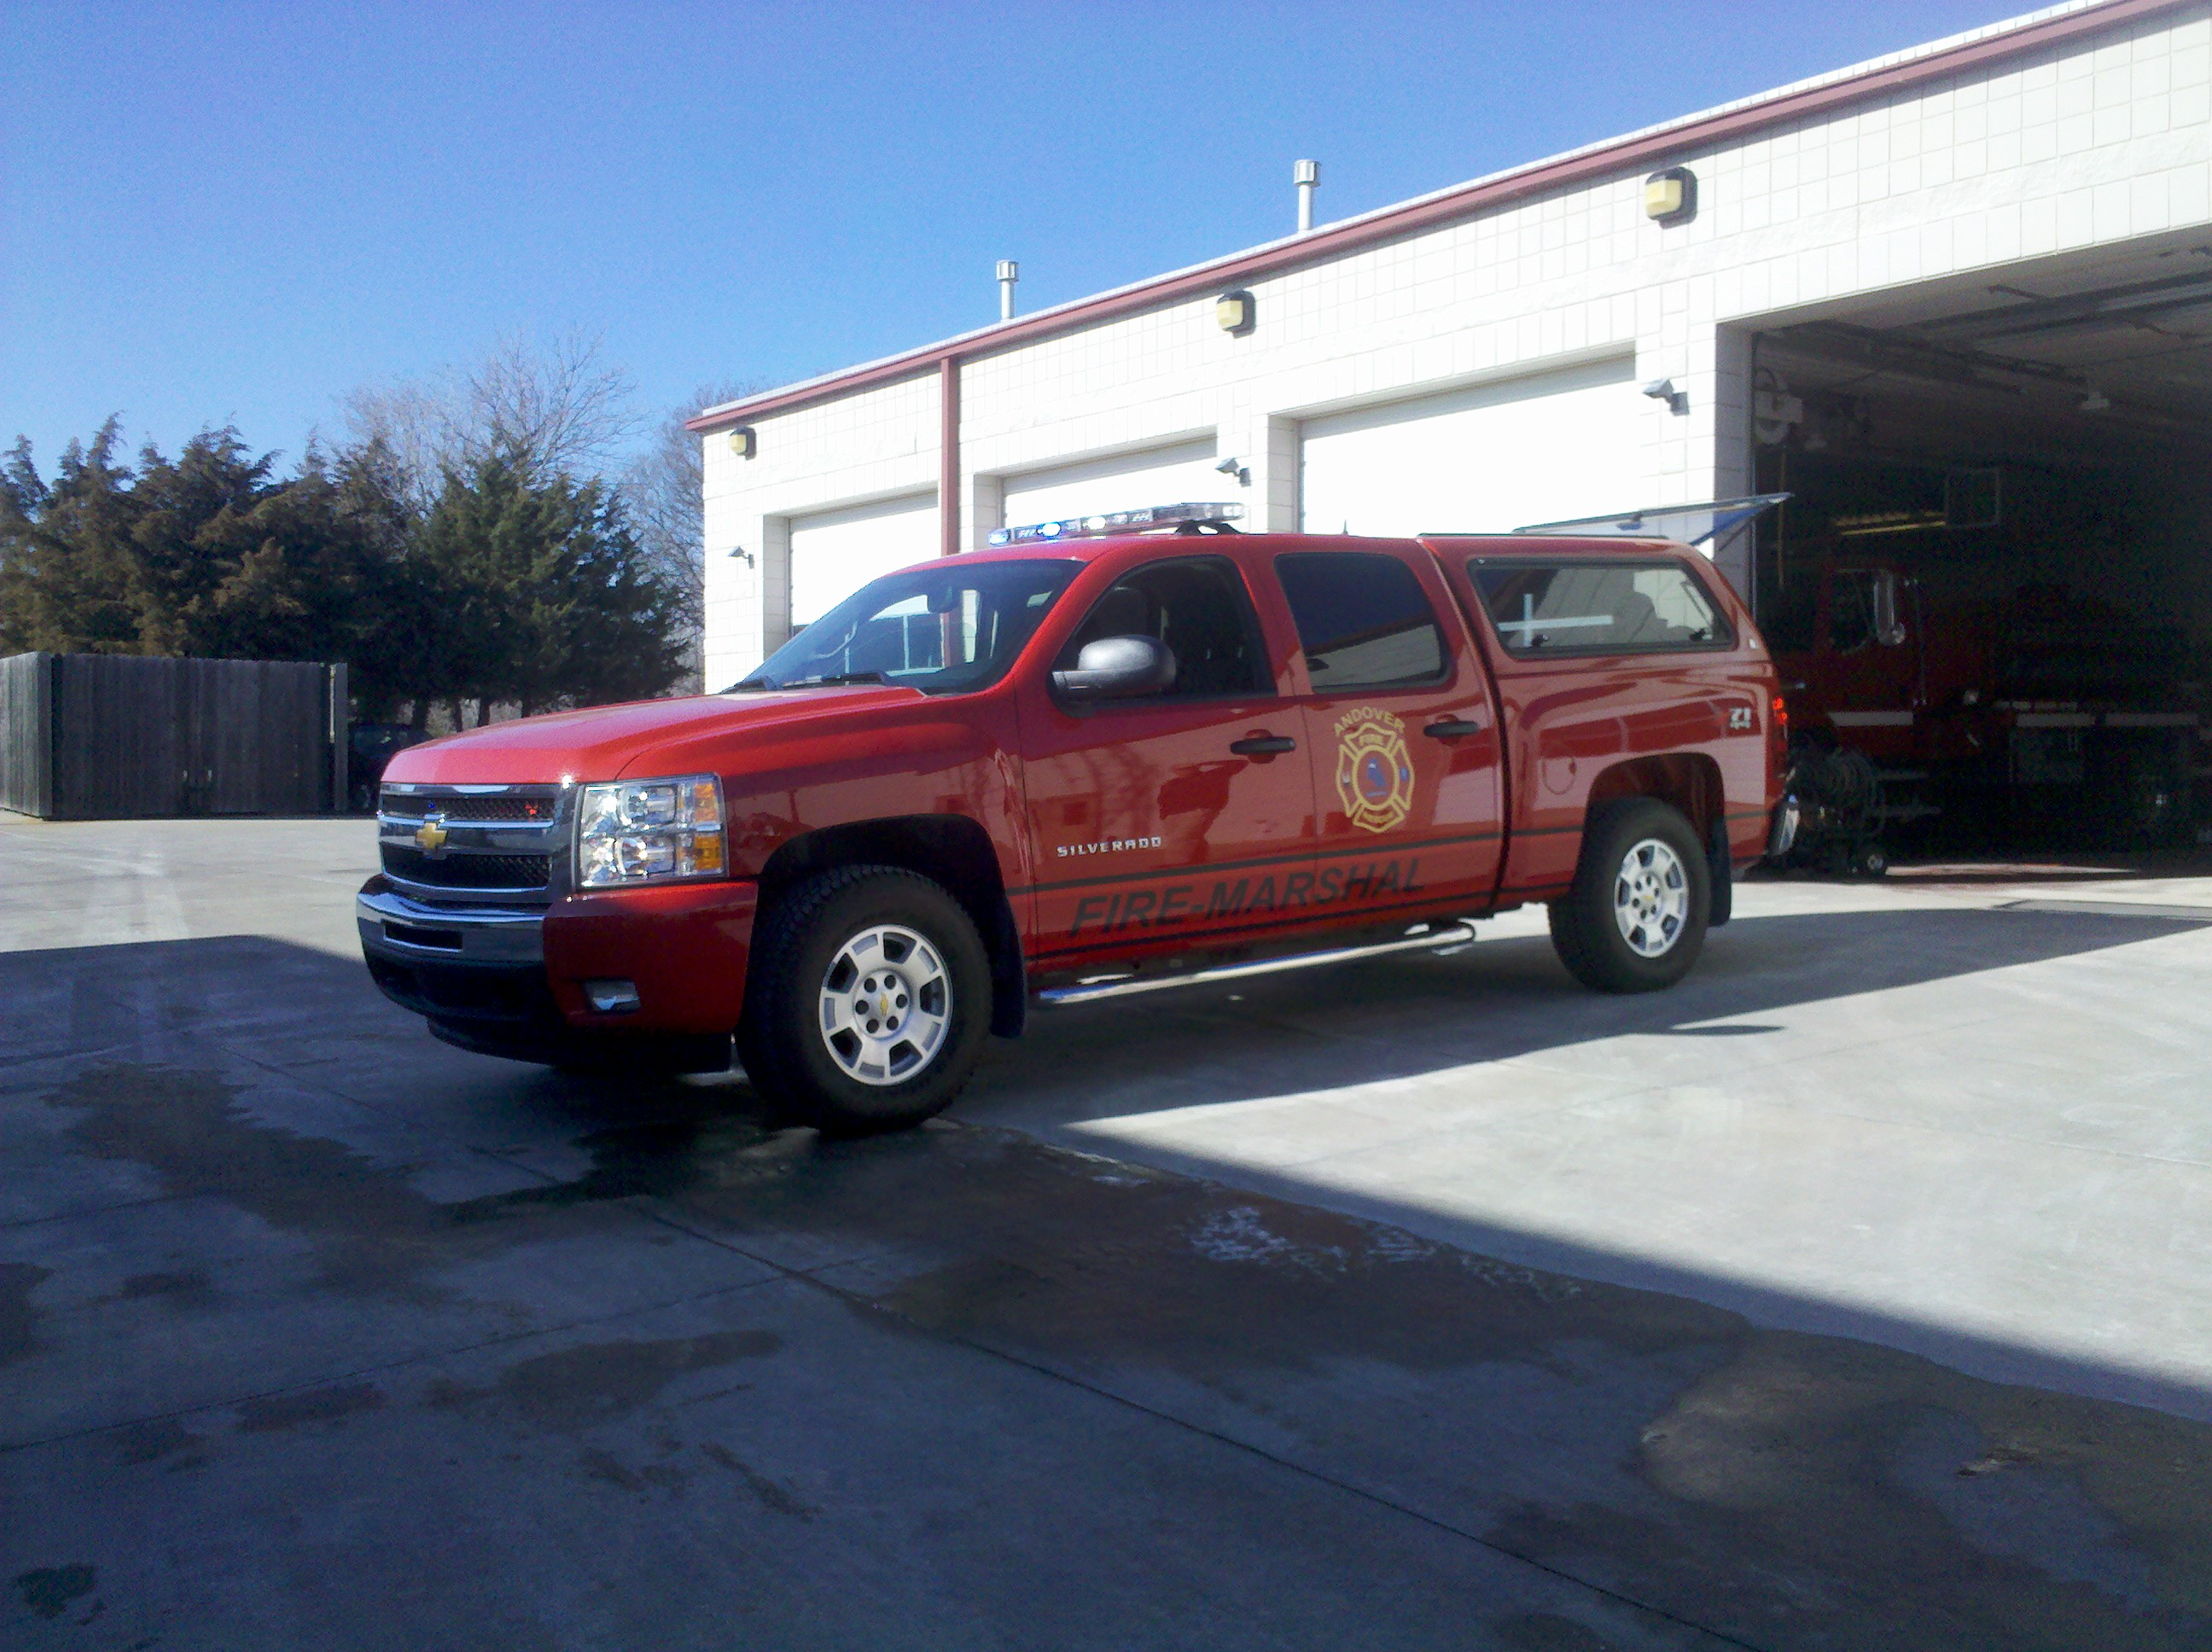 Fire Marshal Vehicle